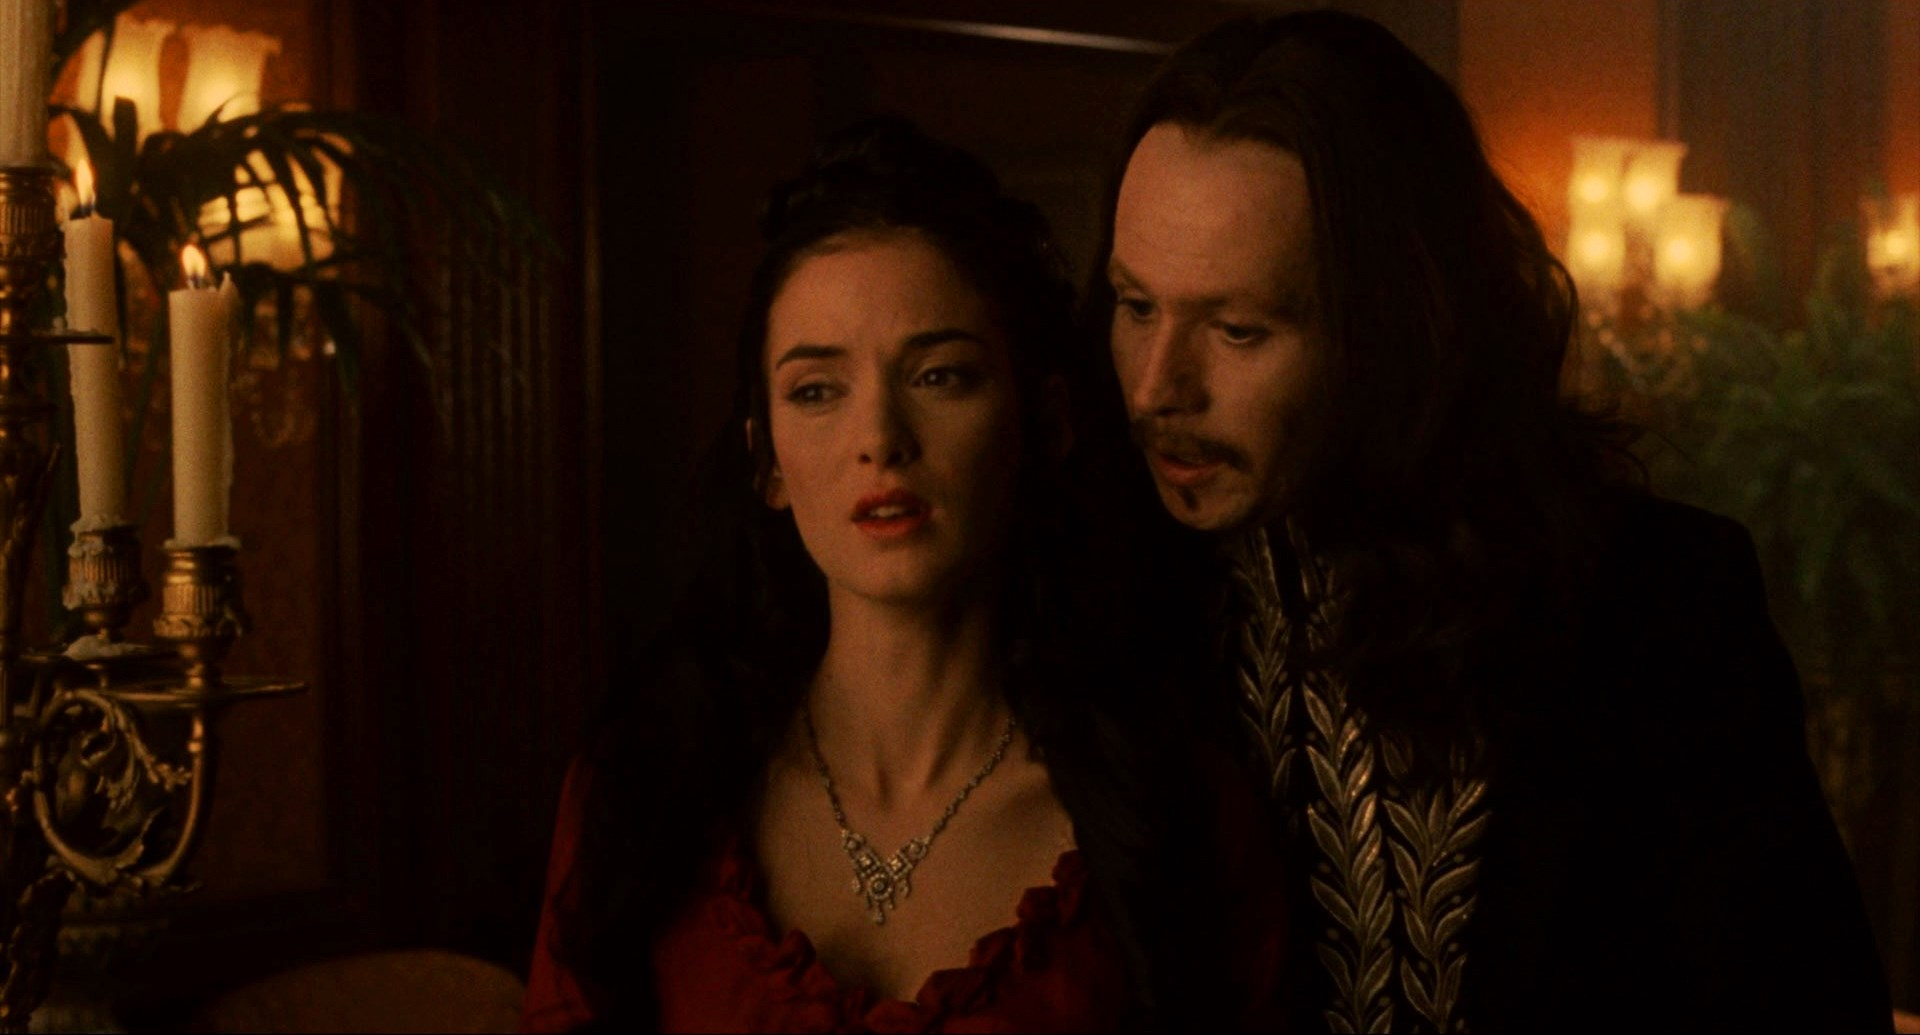 Dracula (Gary Oldman) seduces Mina (Winona Ryder), the reincarnation of his late wife in Bram Stoker's Dracula (1992)